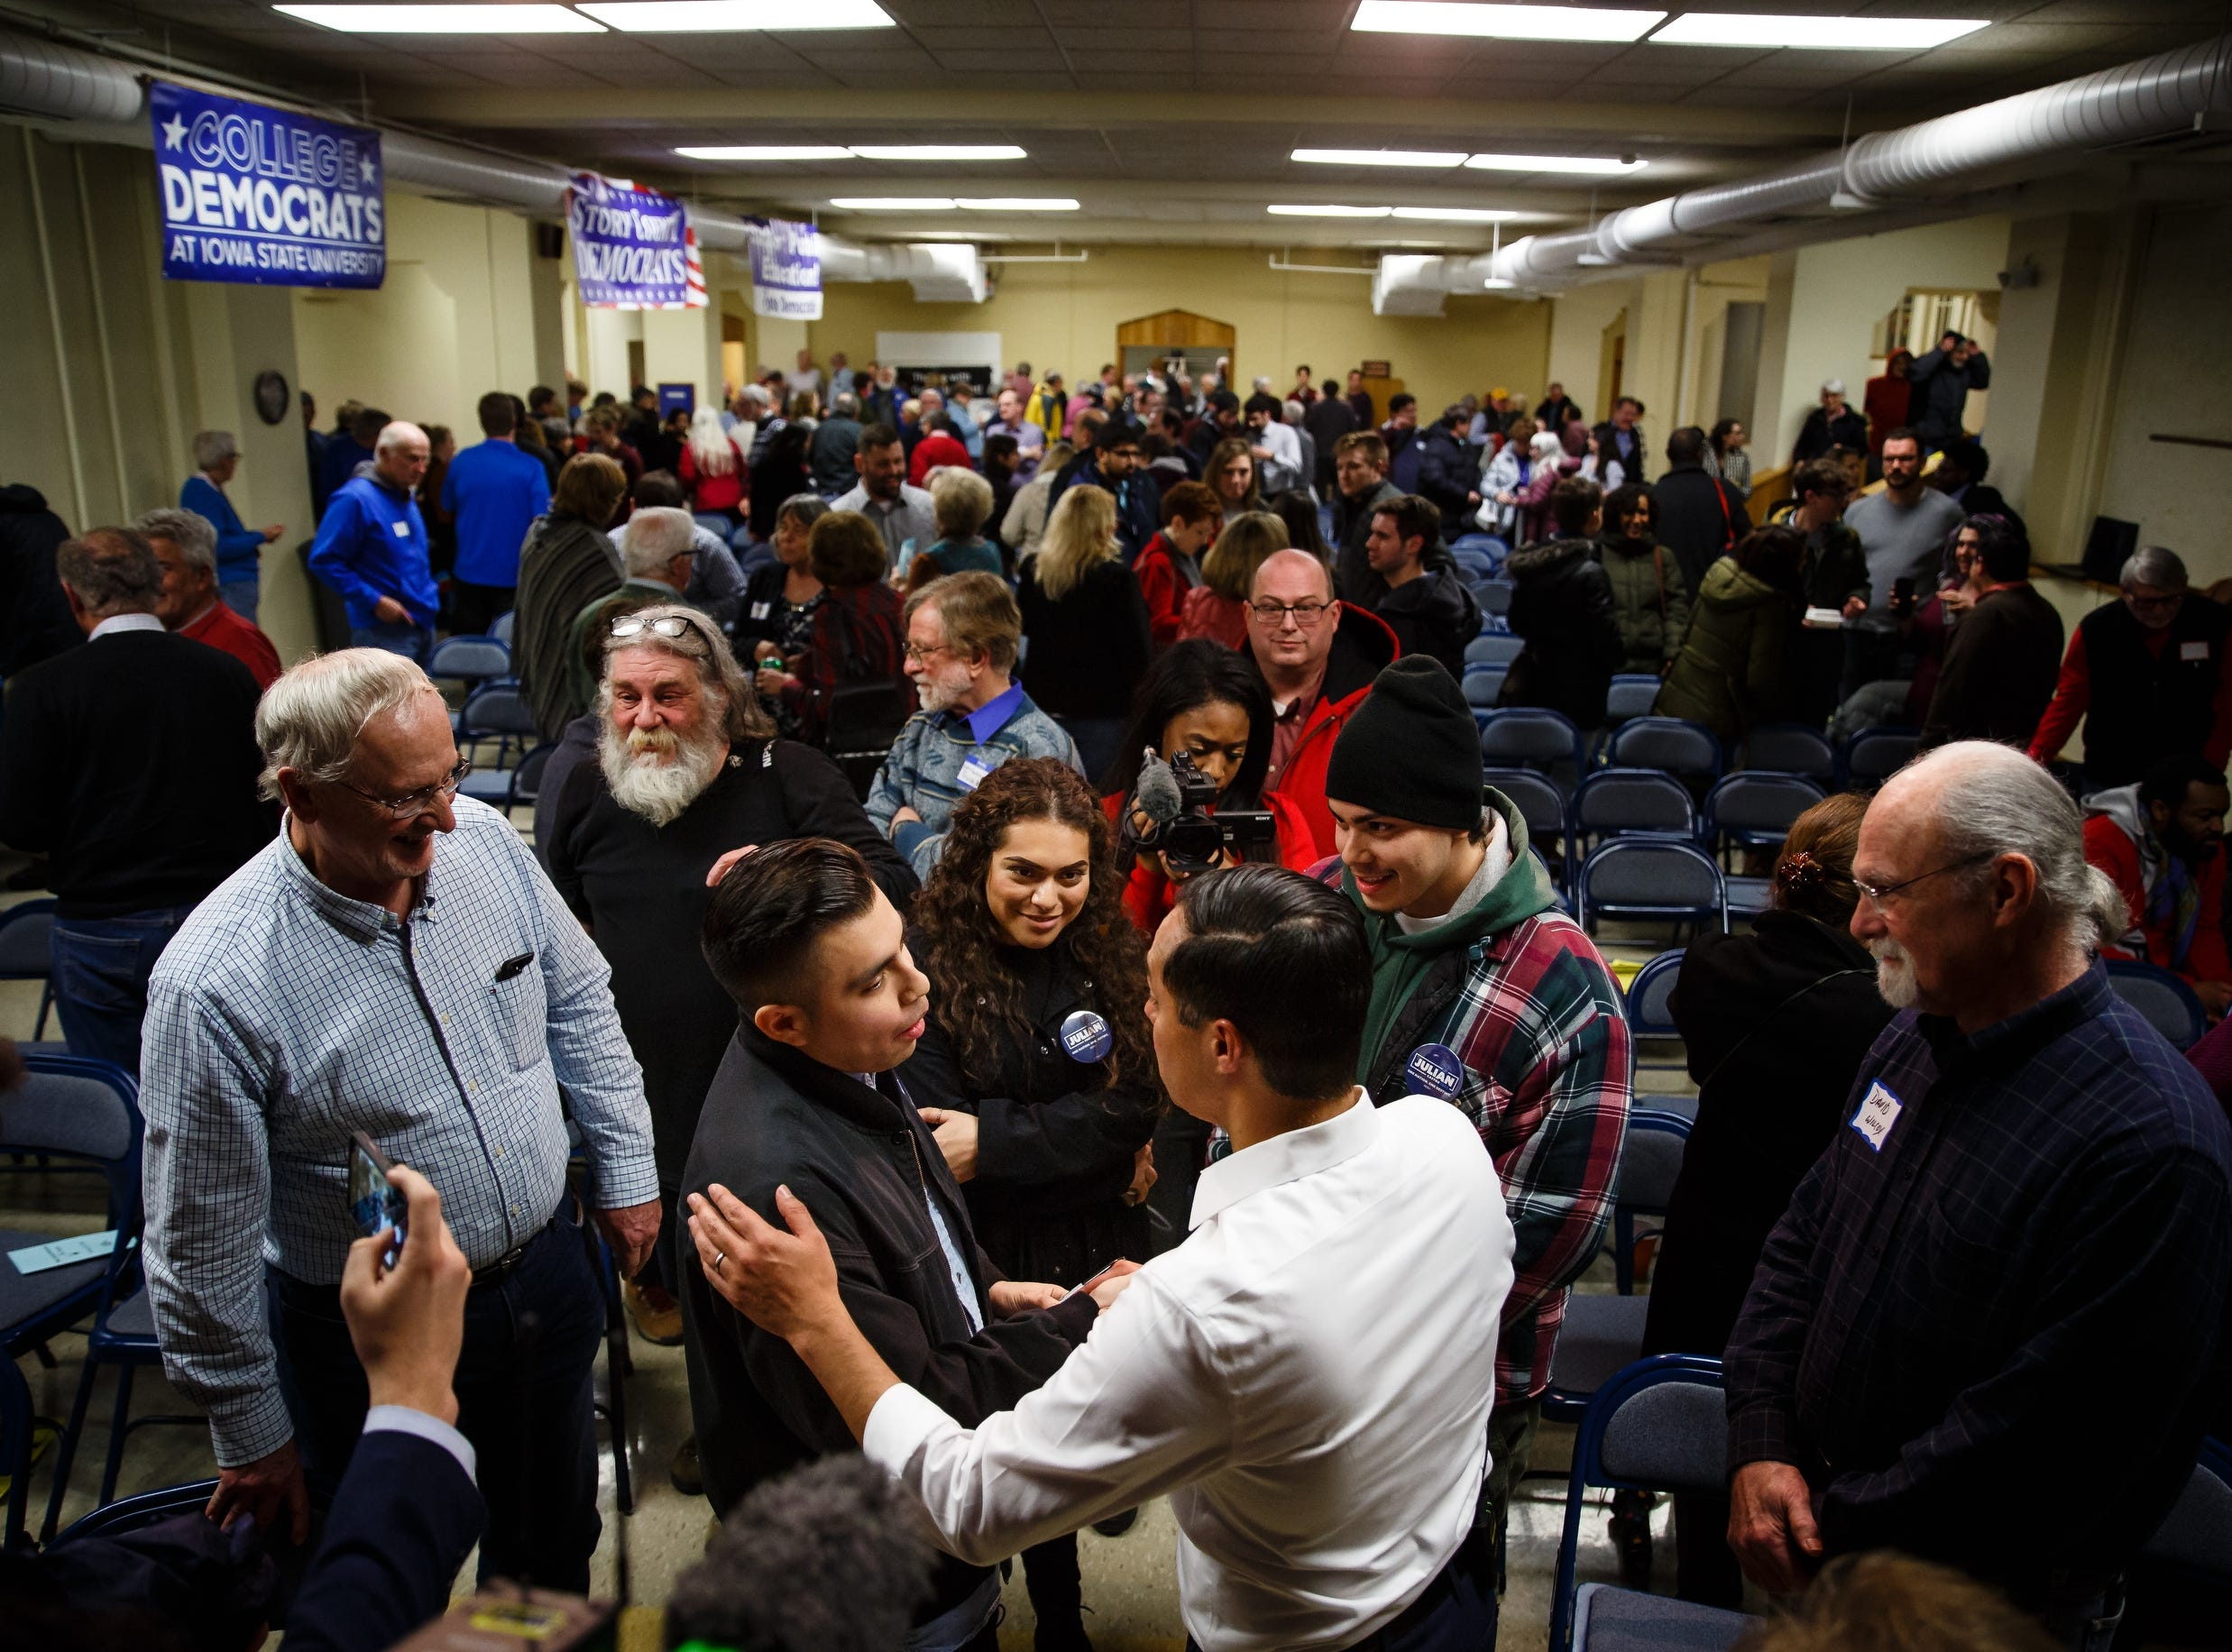 Former Housing and Urban Development Secretary Julian Castro greats people after his speech at the Story County Democrats: Annual Soup Supper Fundraiser on Saturday, Feb. 23, 2019 in Ames.